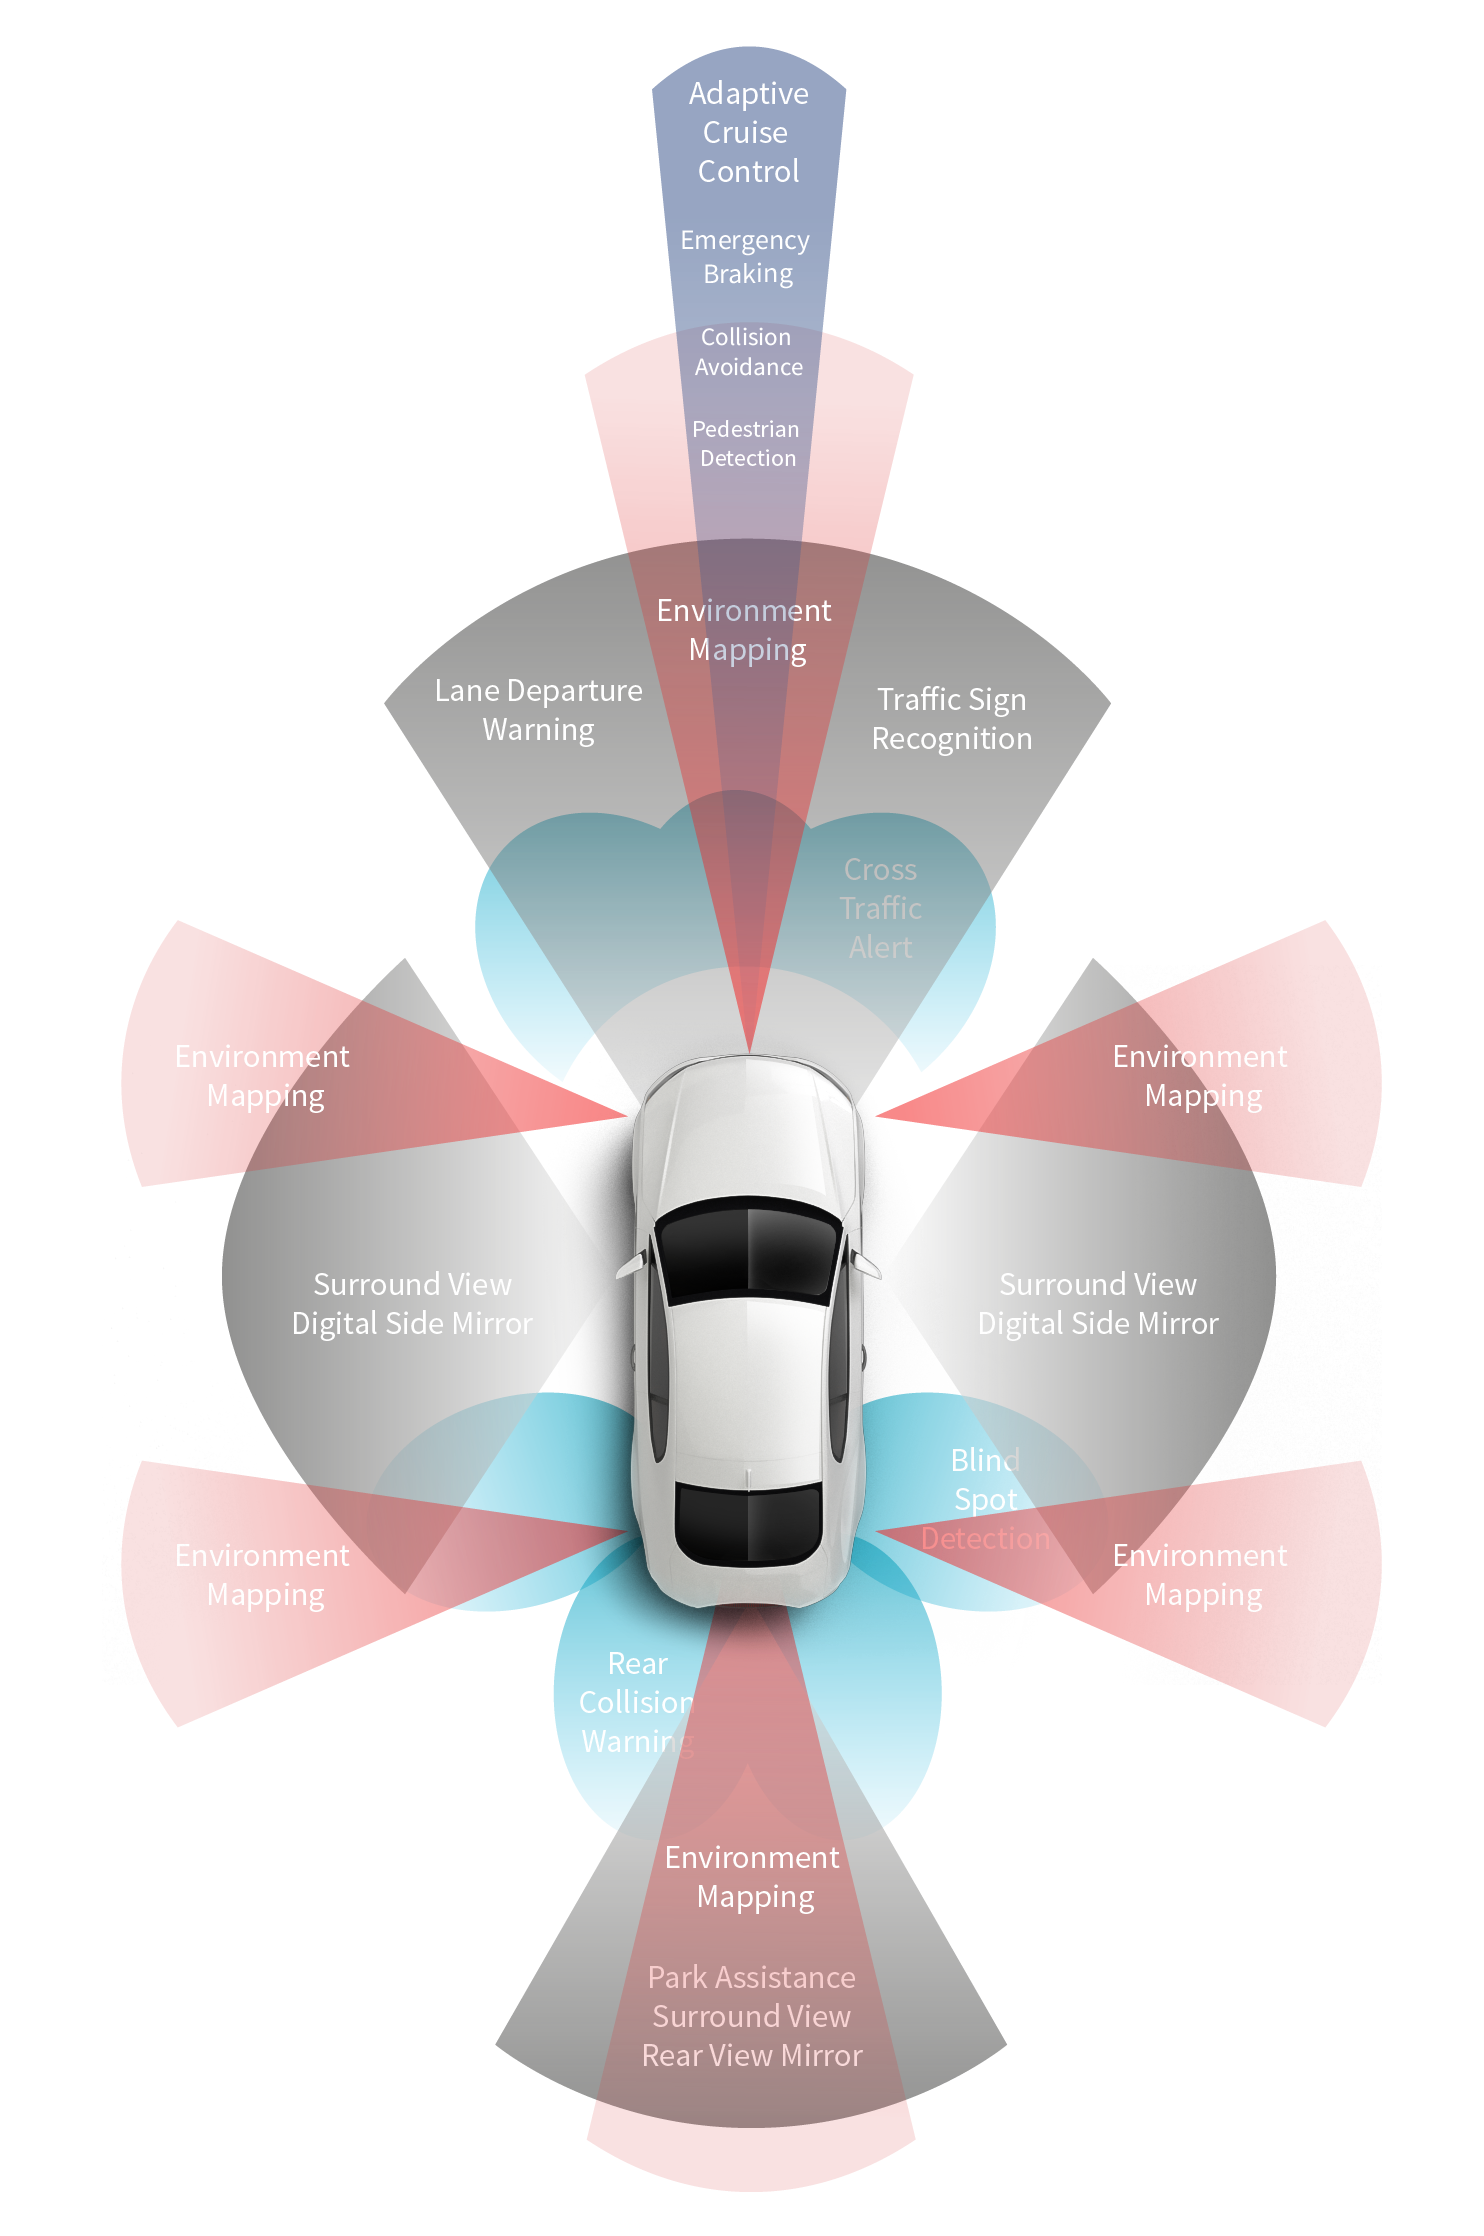 Automated Driving - ADAS (advanced driver assistance systems